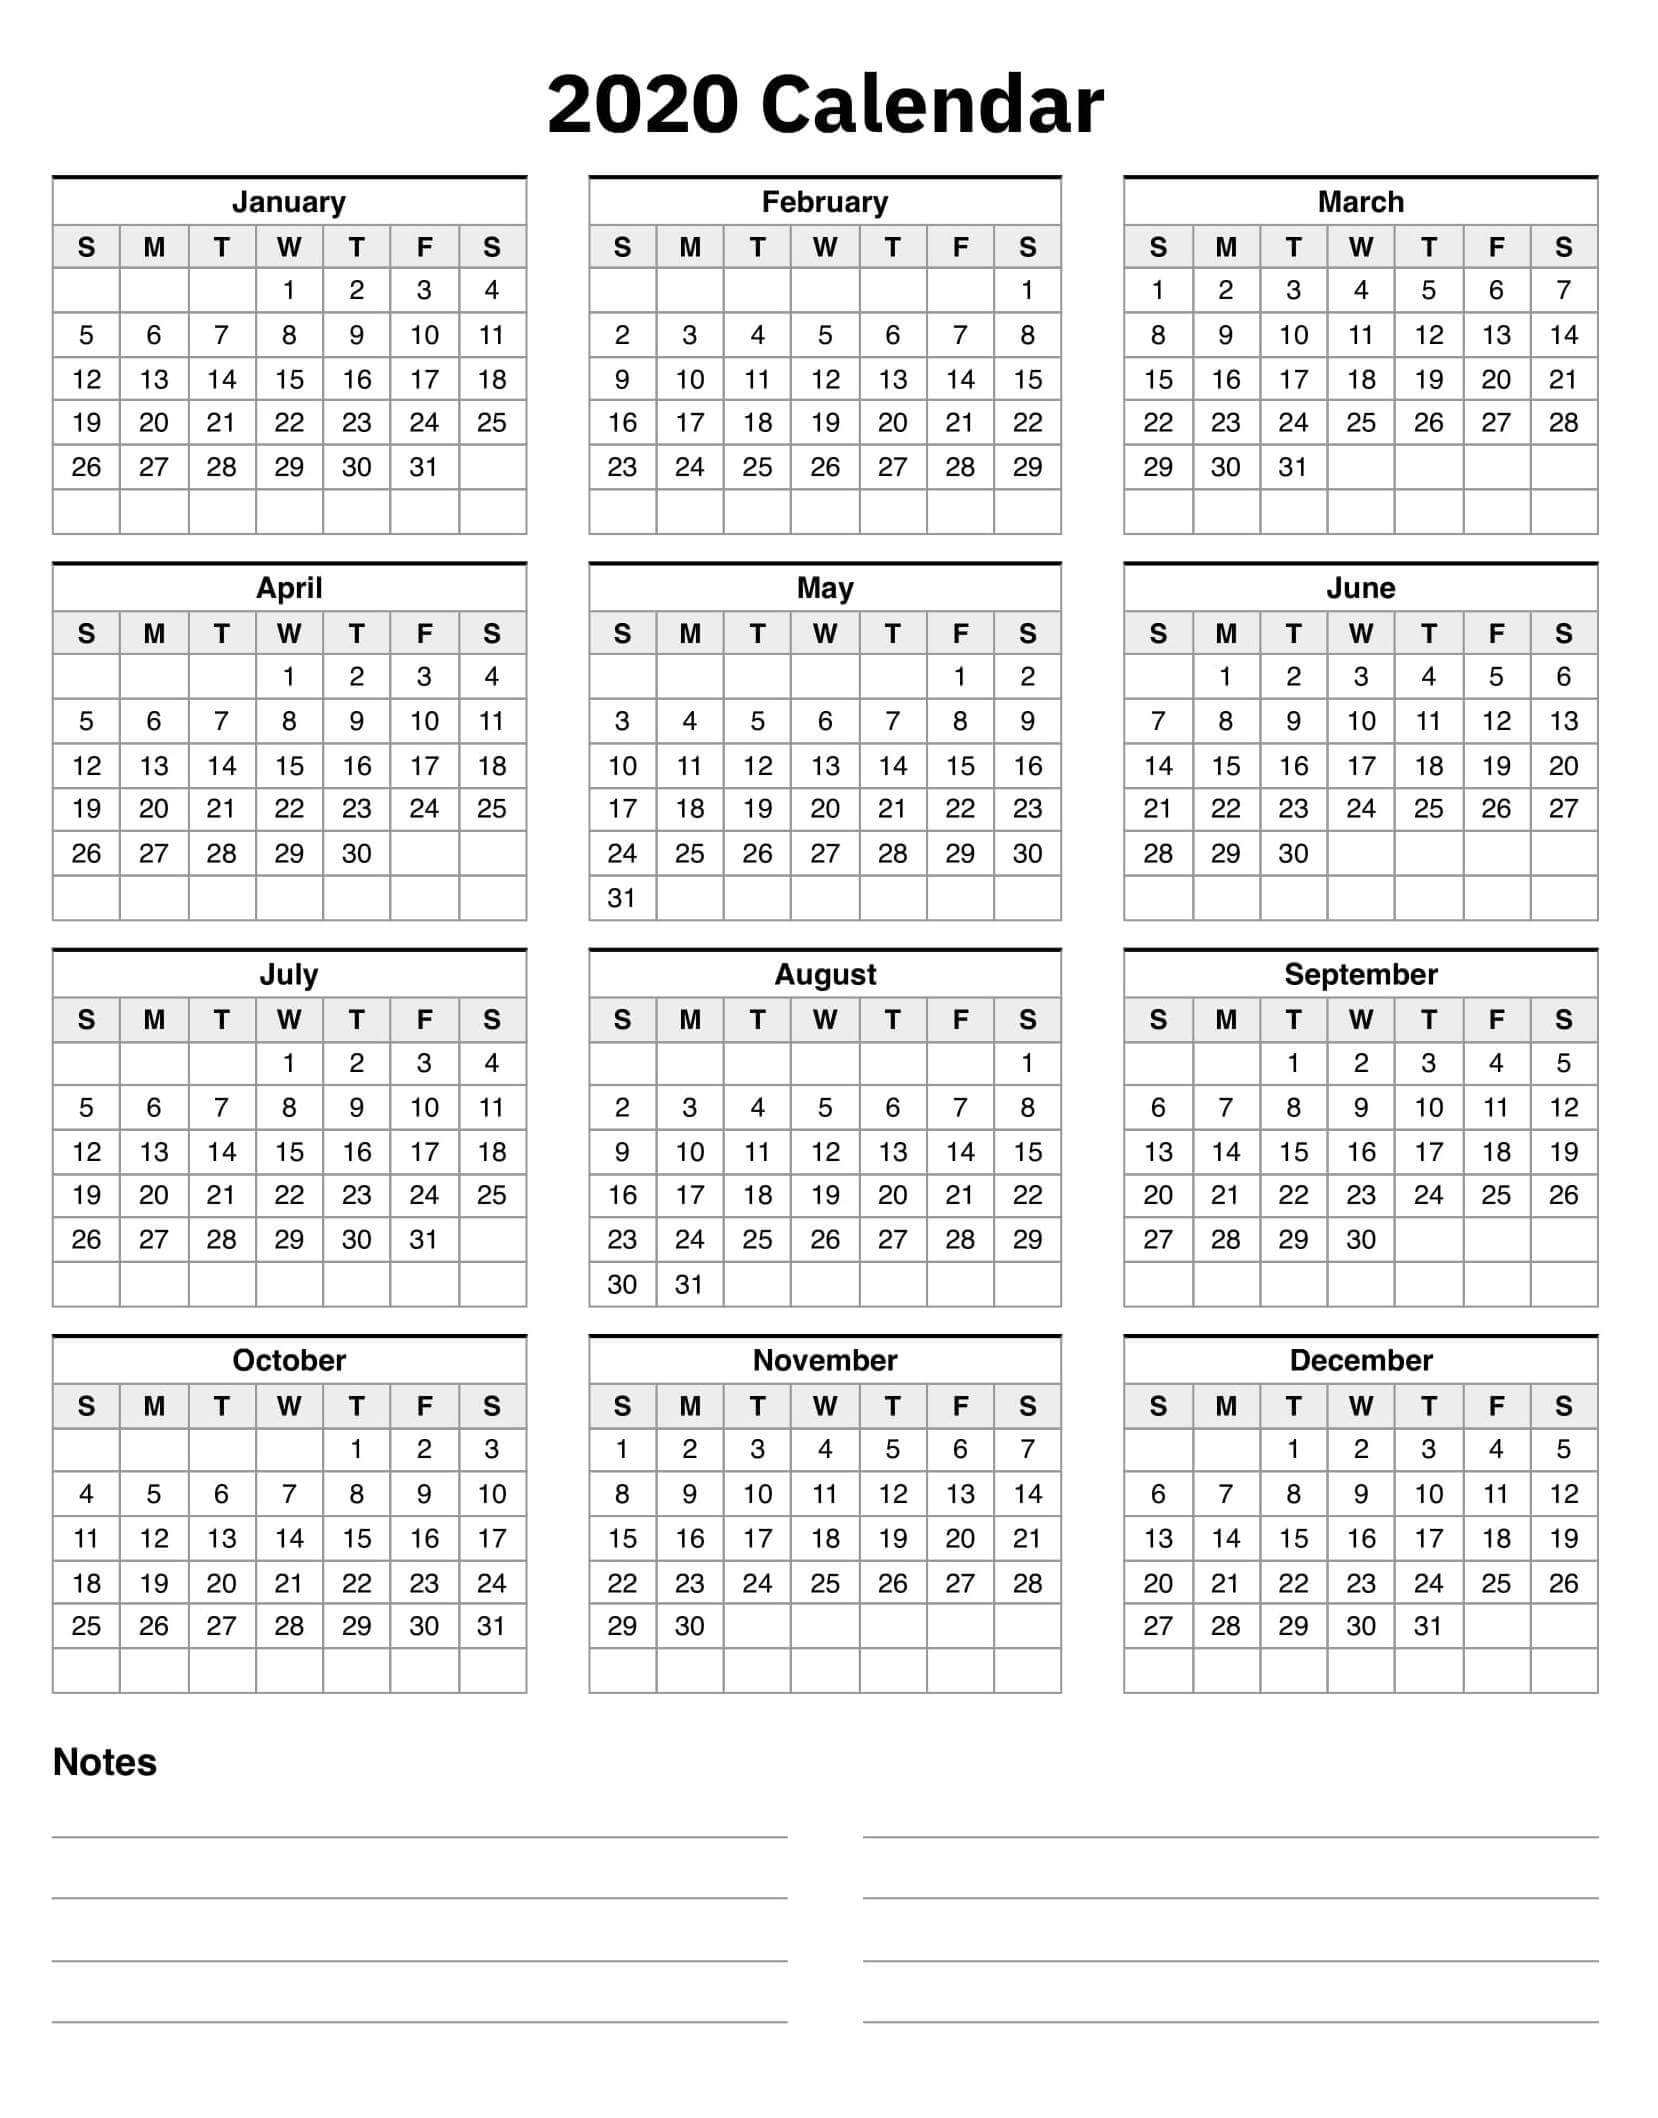 Colorful Yearly Calendar Template With Notes 2020 Word - Set pertaining to 2020 Calendar Landscape Year At A Glance